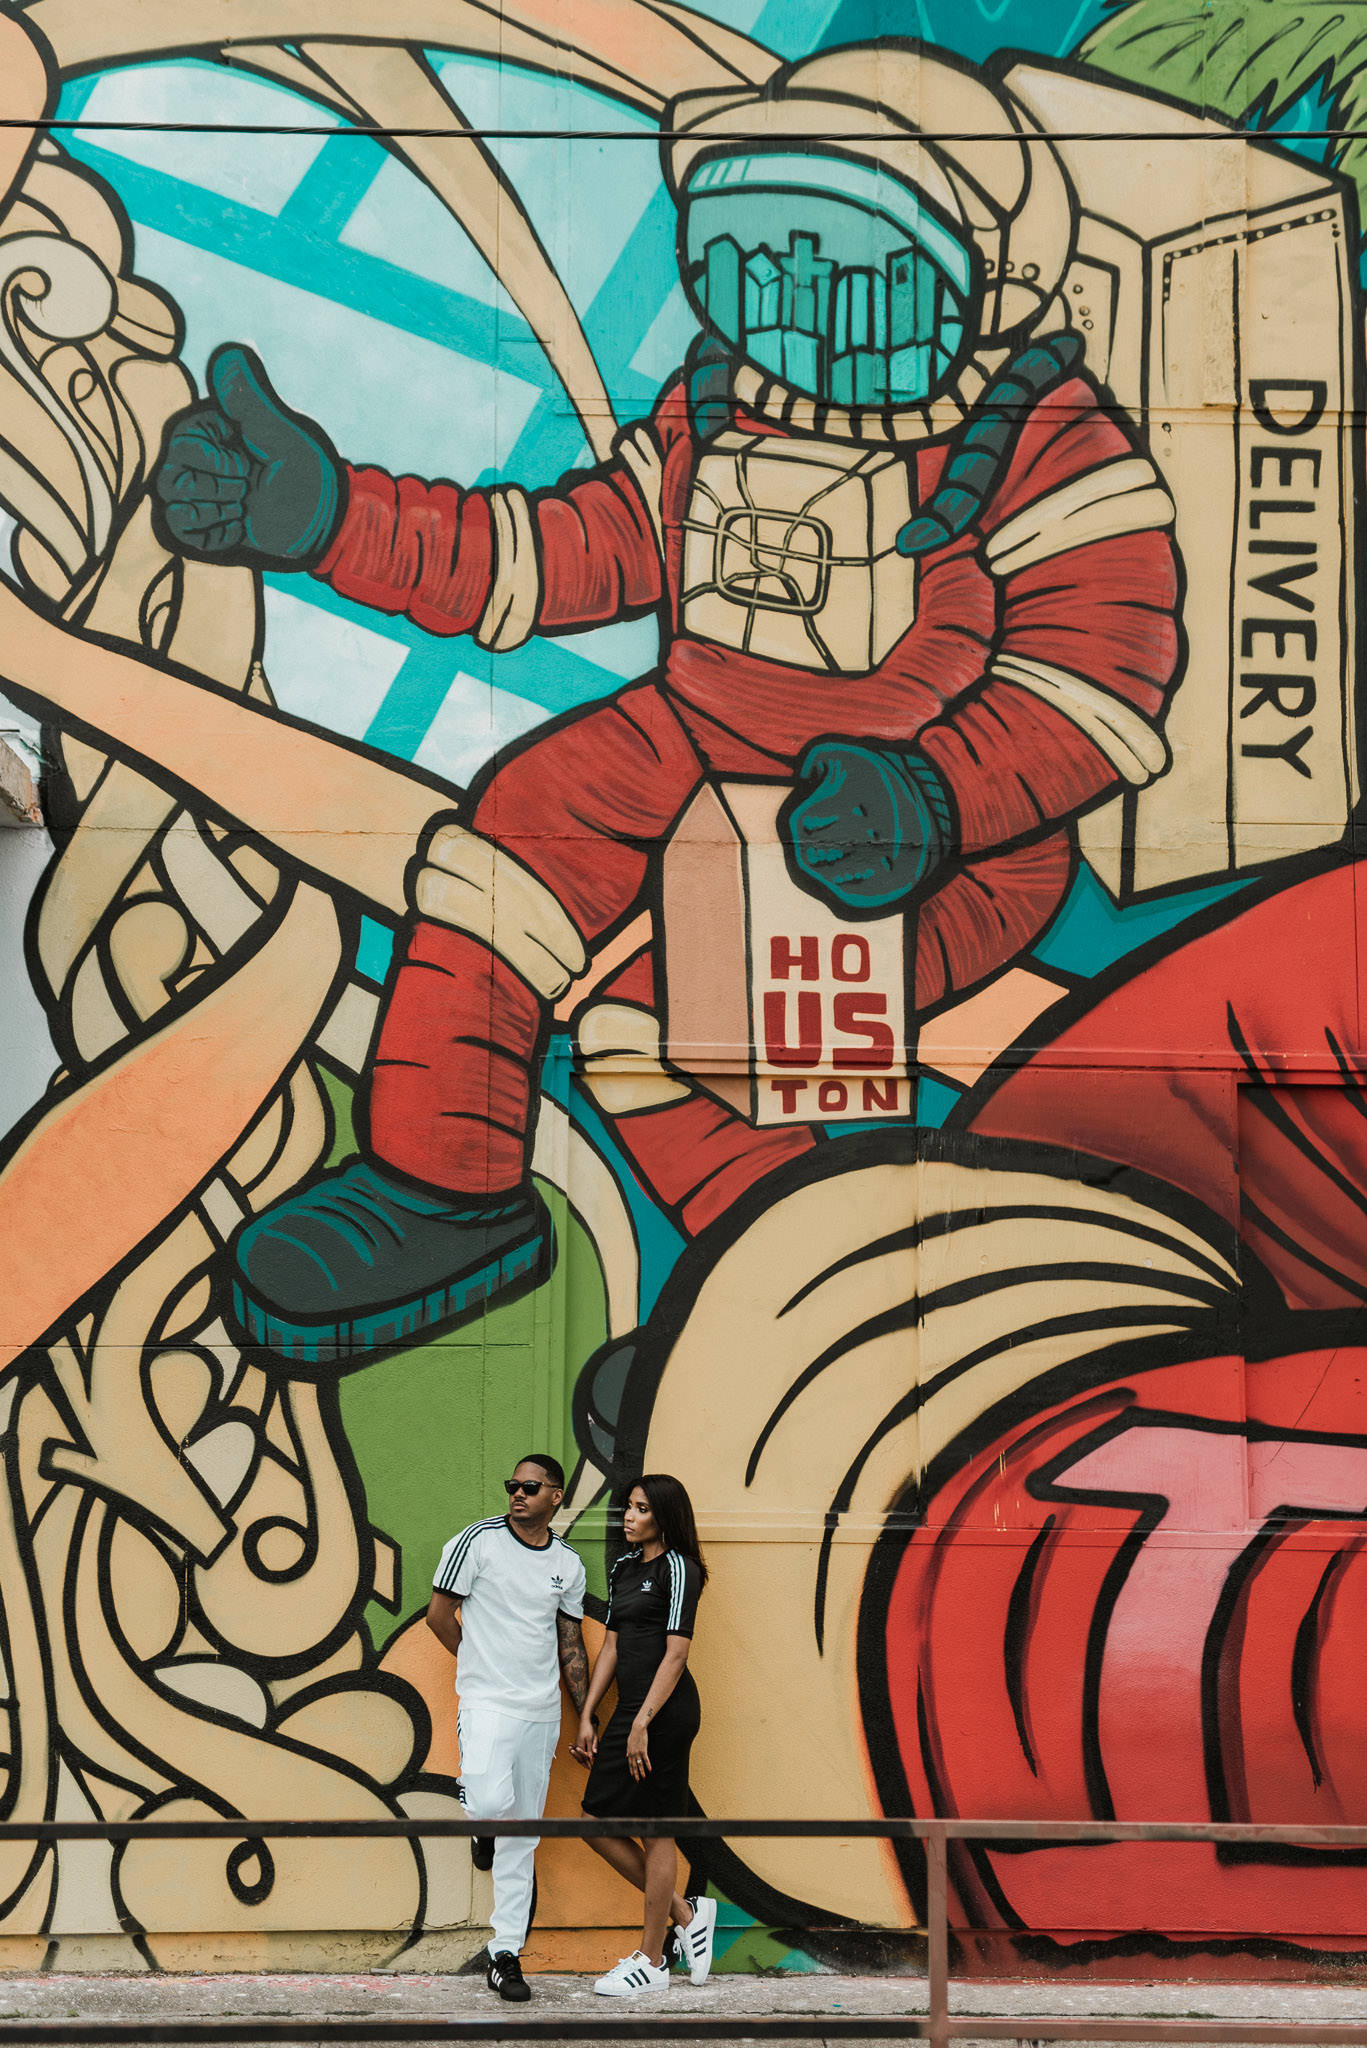 houston-graffiti-wall-astronaut-space-colorful-art-urban-black-couple-engagement-photography